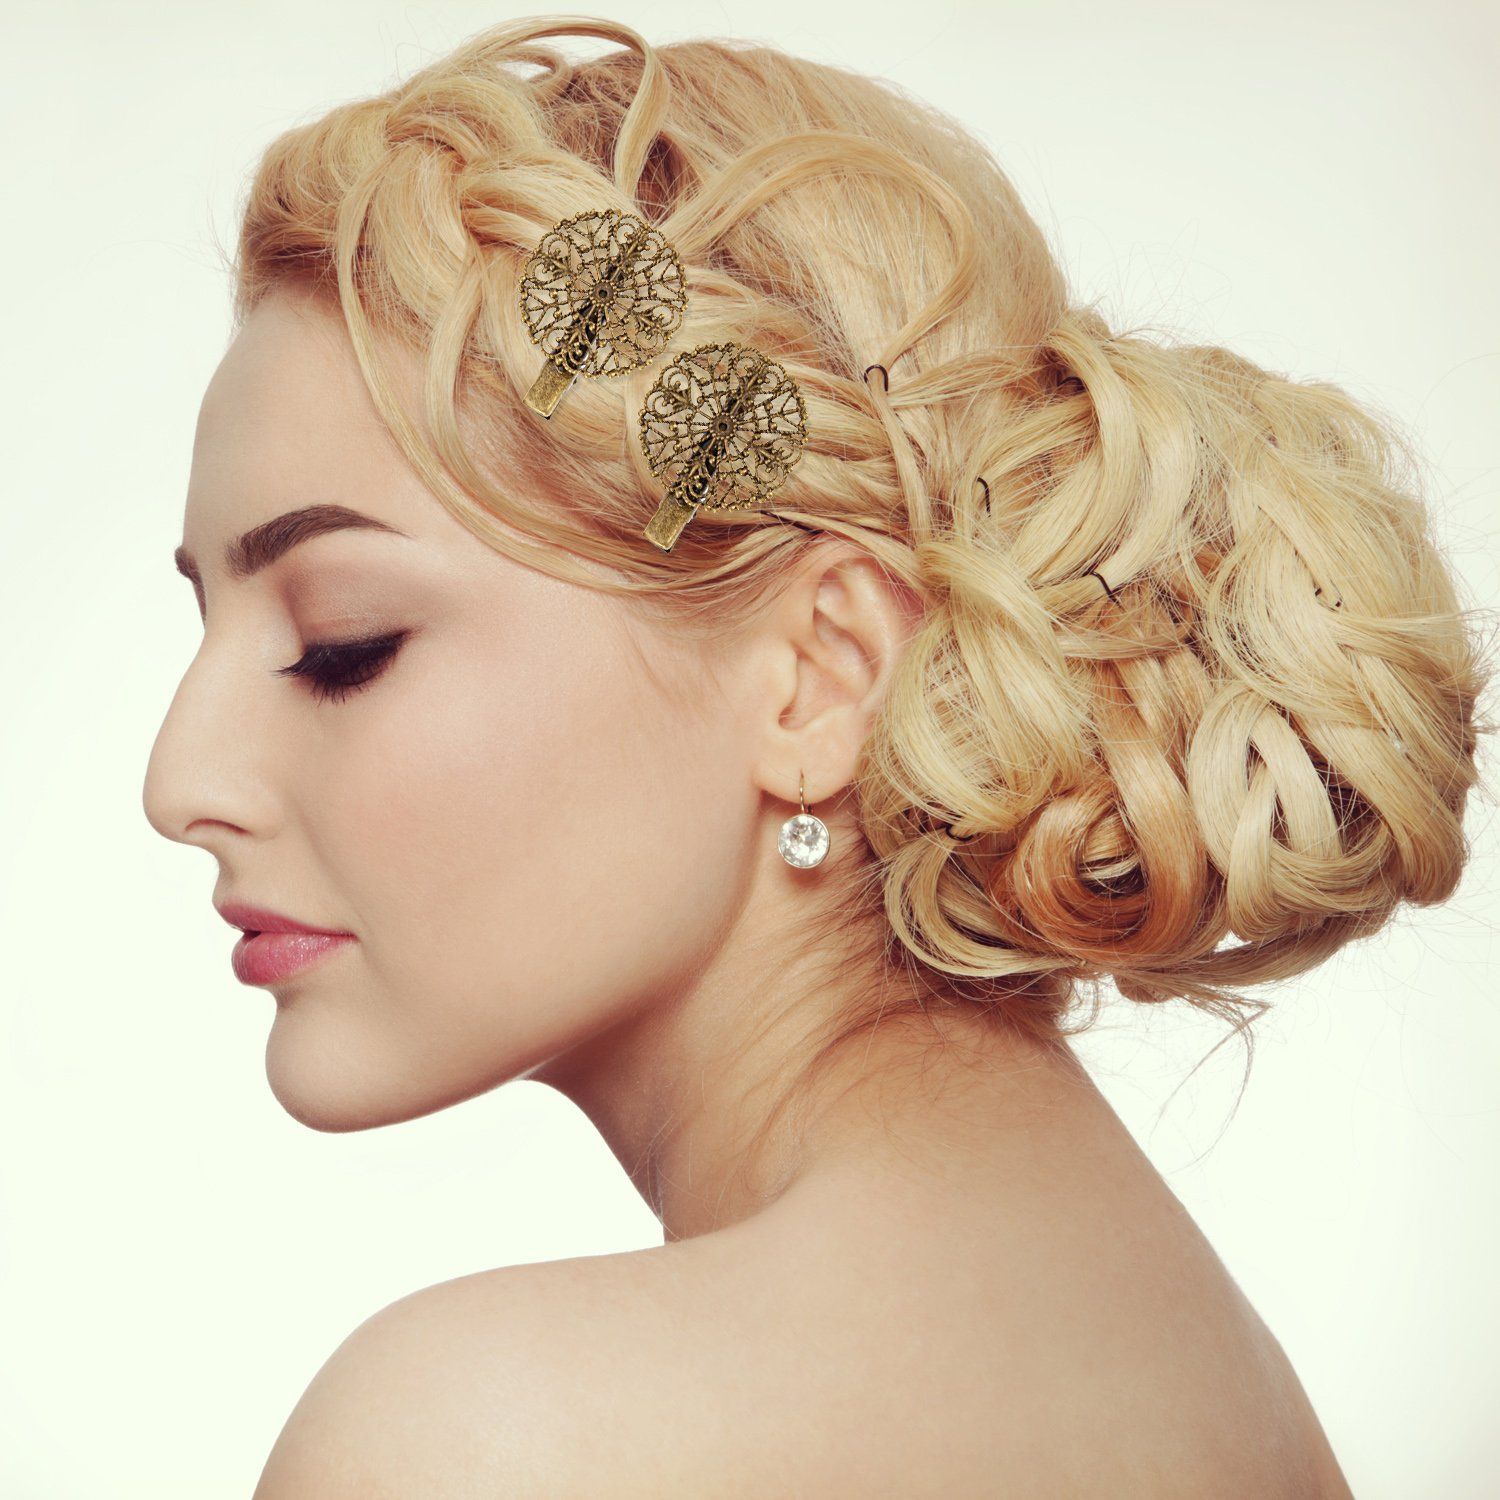 BBTO 22 Pieces Vintage Hair Clips Barrettes Bronze Leaf Bobby Pin Flower Butterfly Heart Hair Clip for Girls and Women, Mix Styles by BBTO (Image #7)